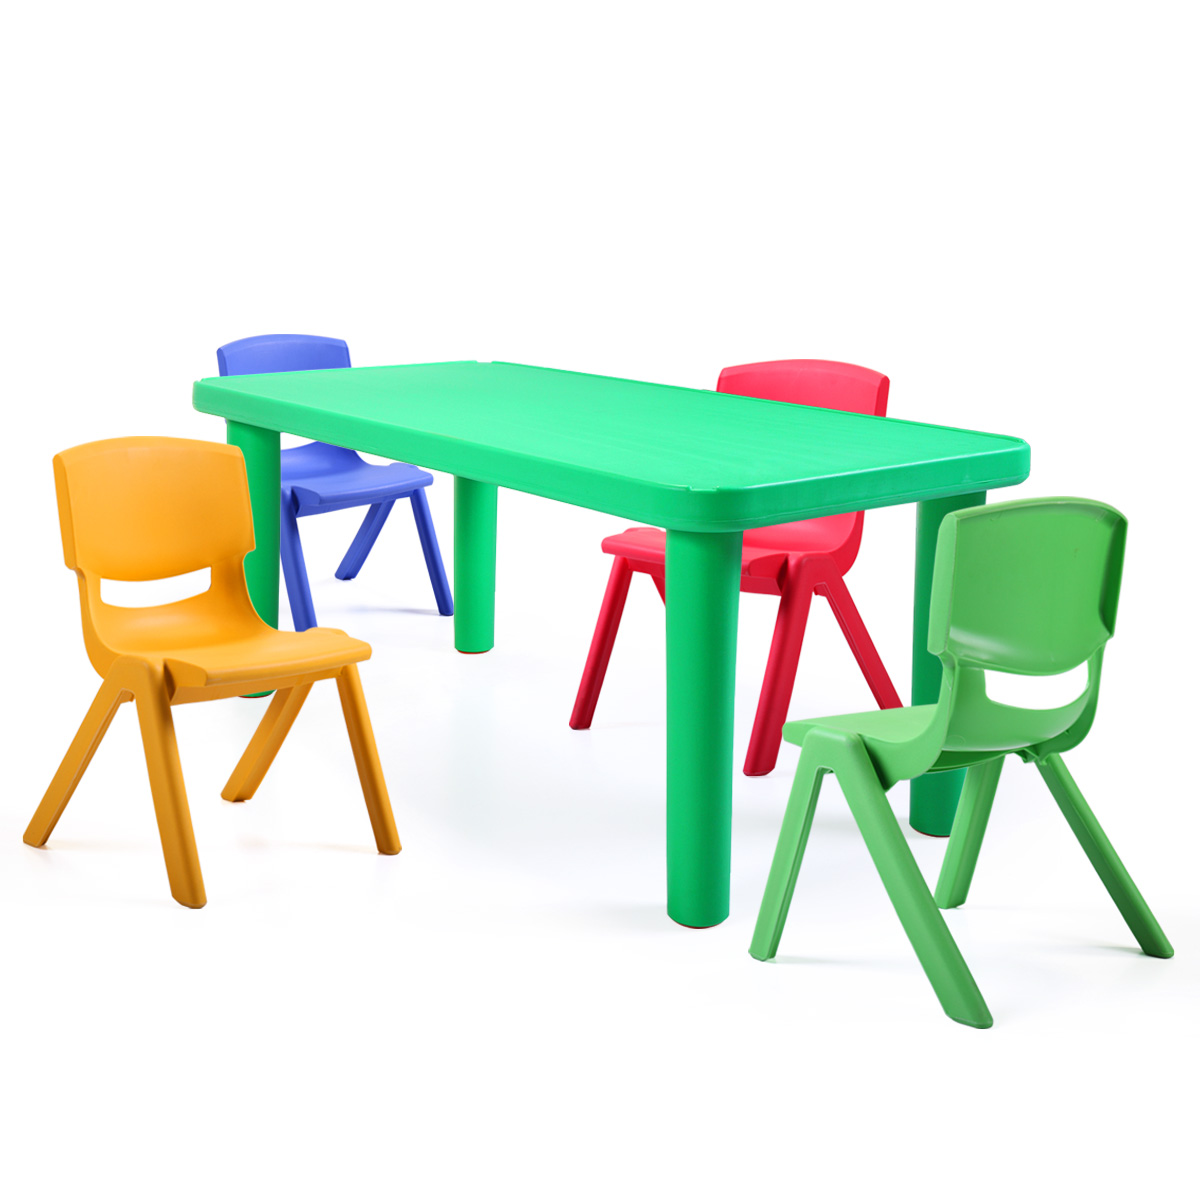 Rectangular Kids Plastic Play Table Portable Activity Table for Children Play Room Green